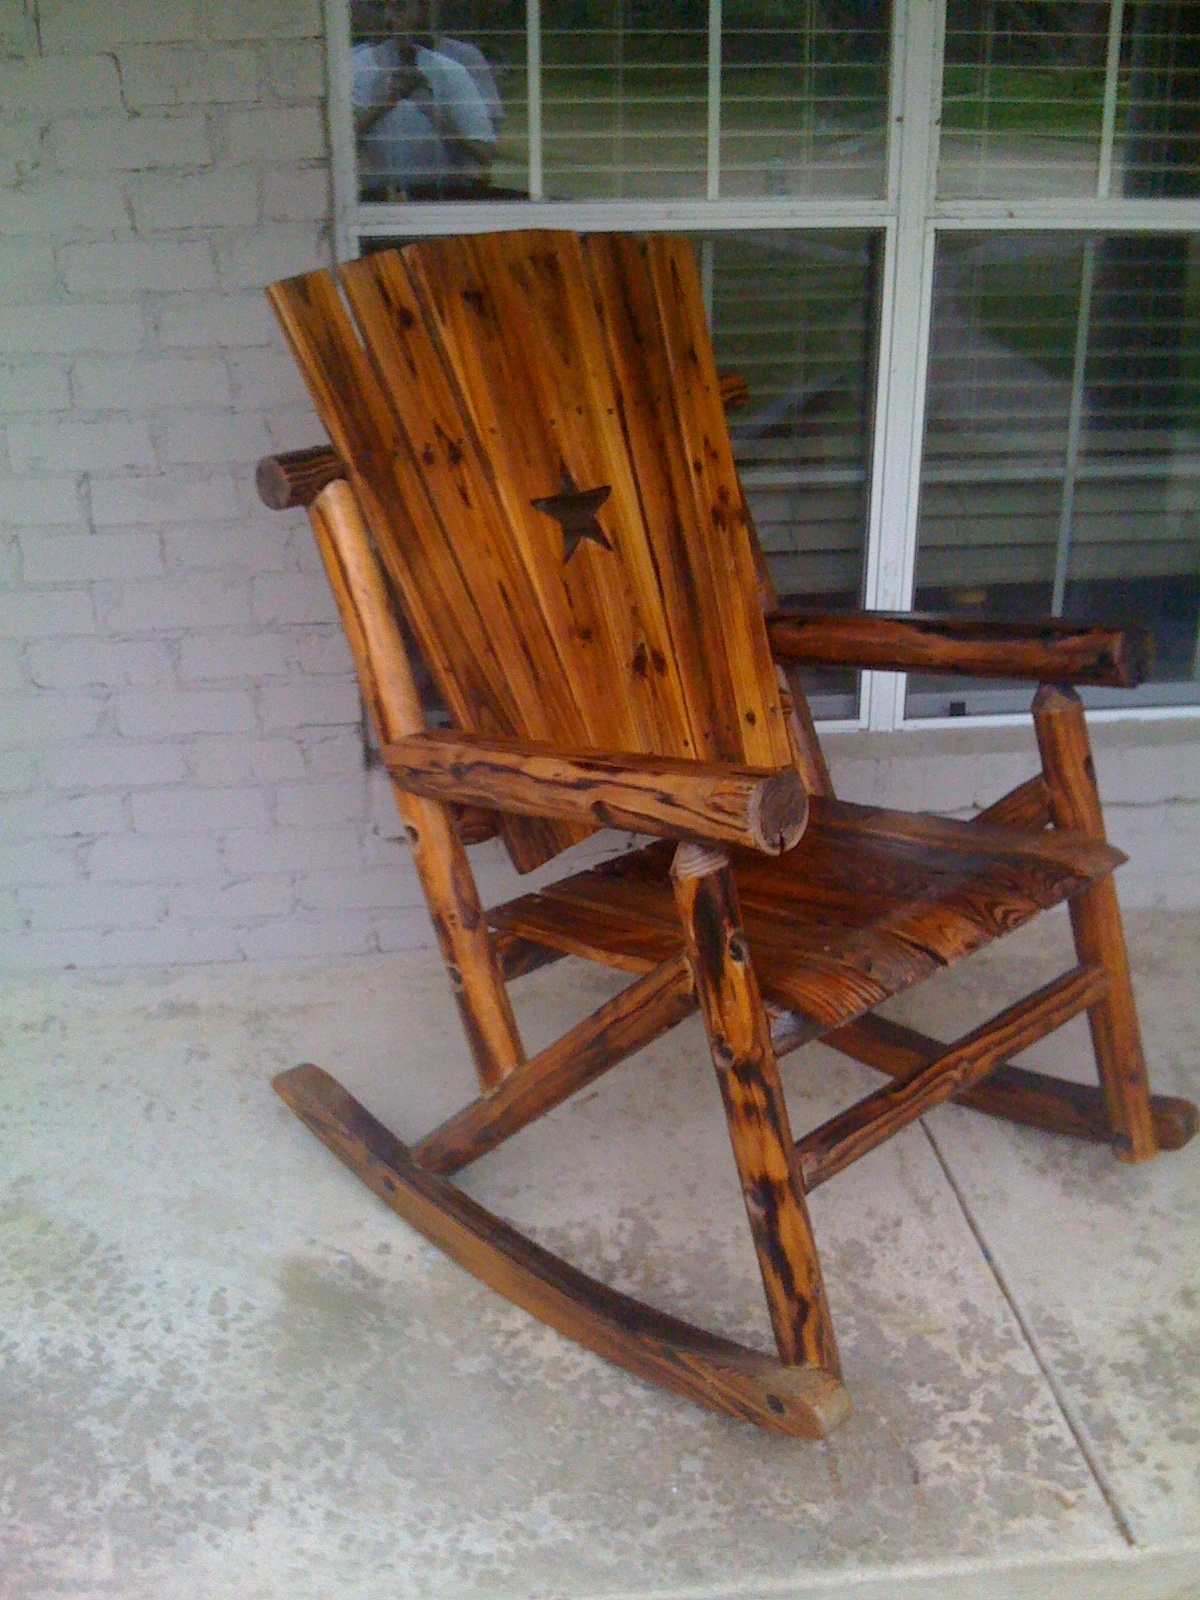 Latest Wooden Patio Rocking Chairs Regarding Outdoor Wooden Rocking Chairs Rustic : Pleasure Outdoor Wooden (View 4 of 15)